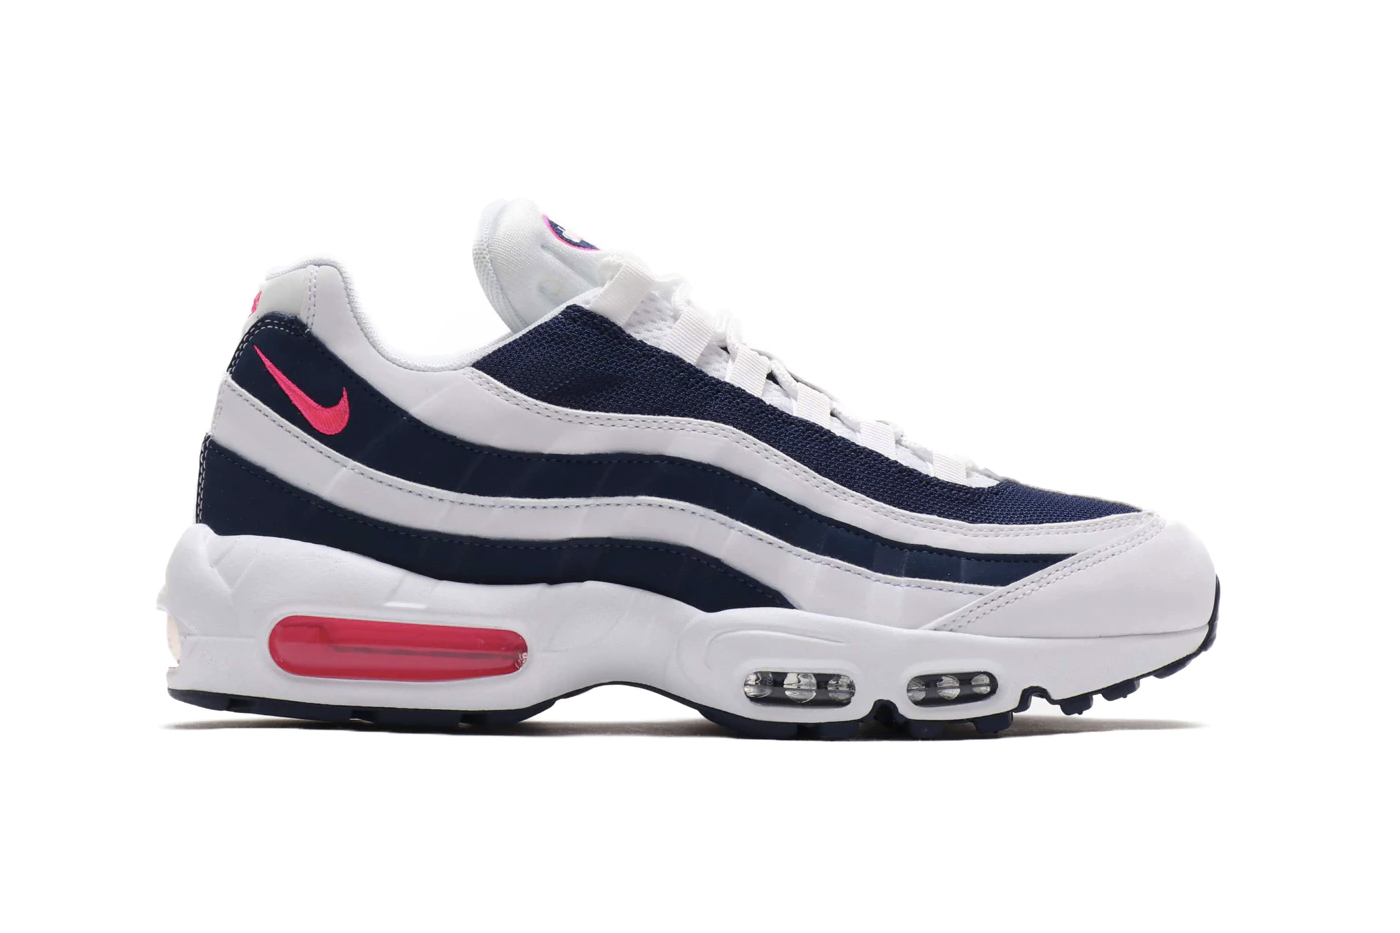 Nike Air Max 95 Pink Blast Midnight Navy white air unit bubbles midsole 90s retro vintage footwear staple 95s stripes leather mesh sidewalls Swoosh Beaverton blue red pink volt green neon